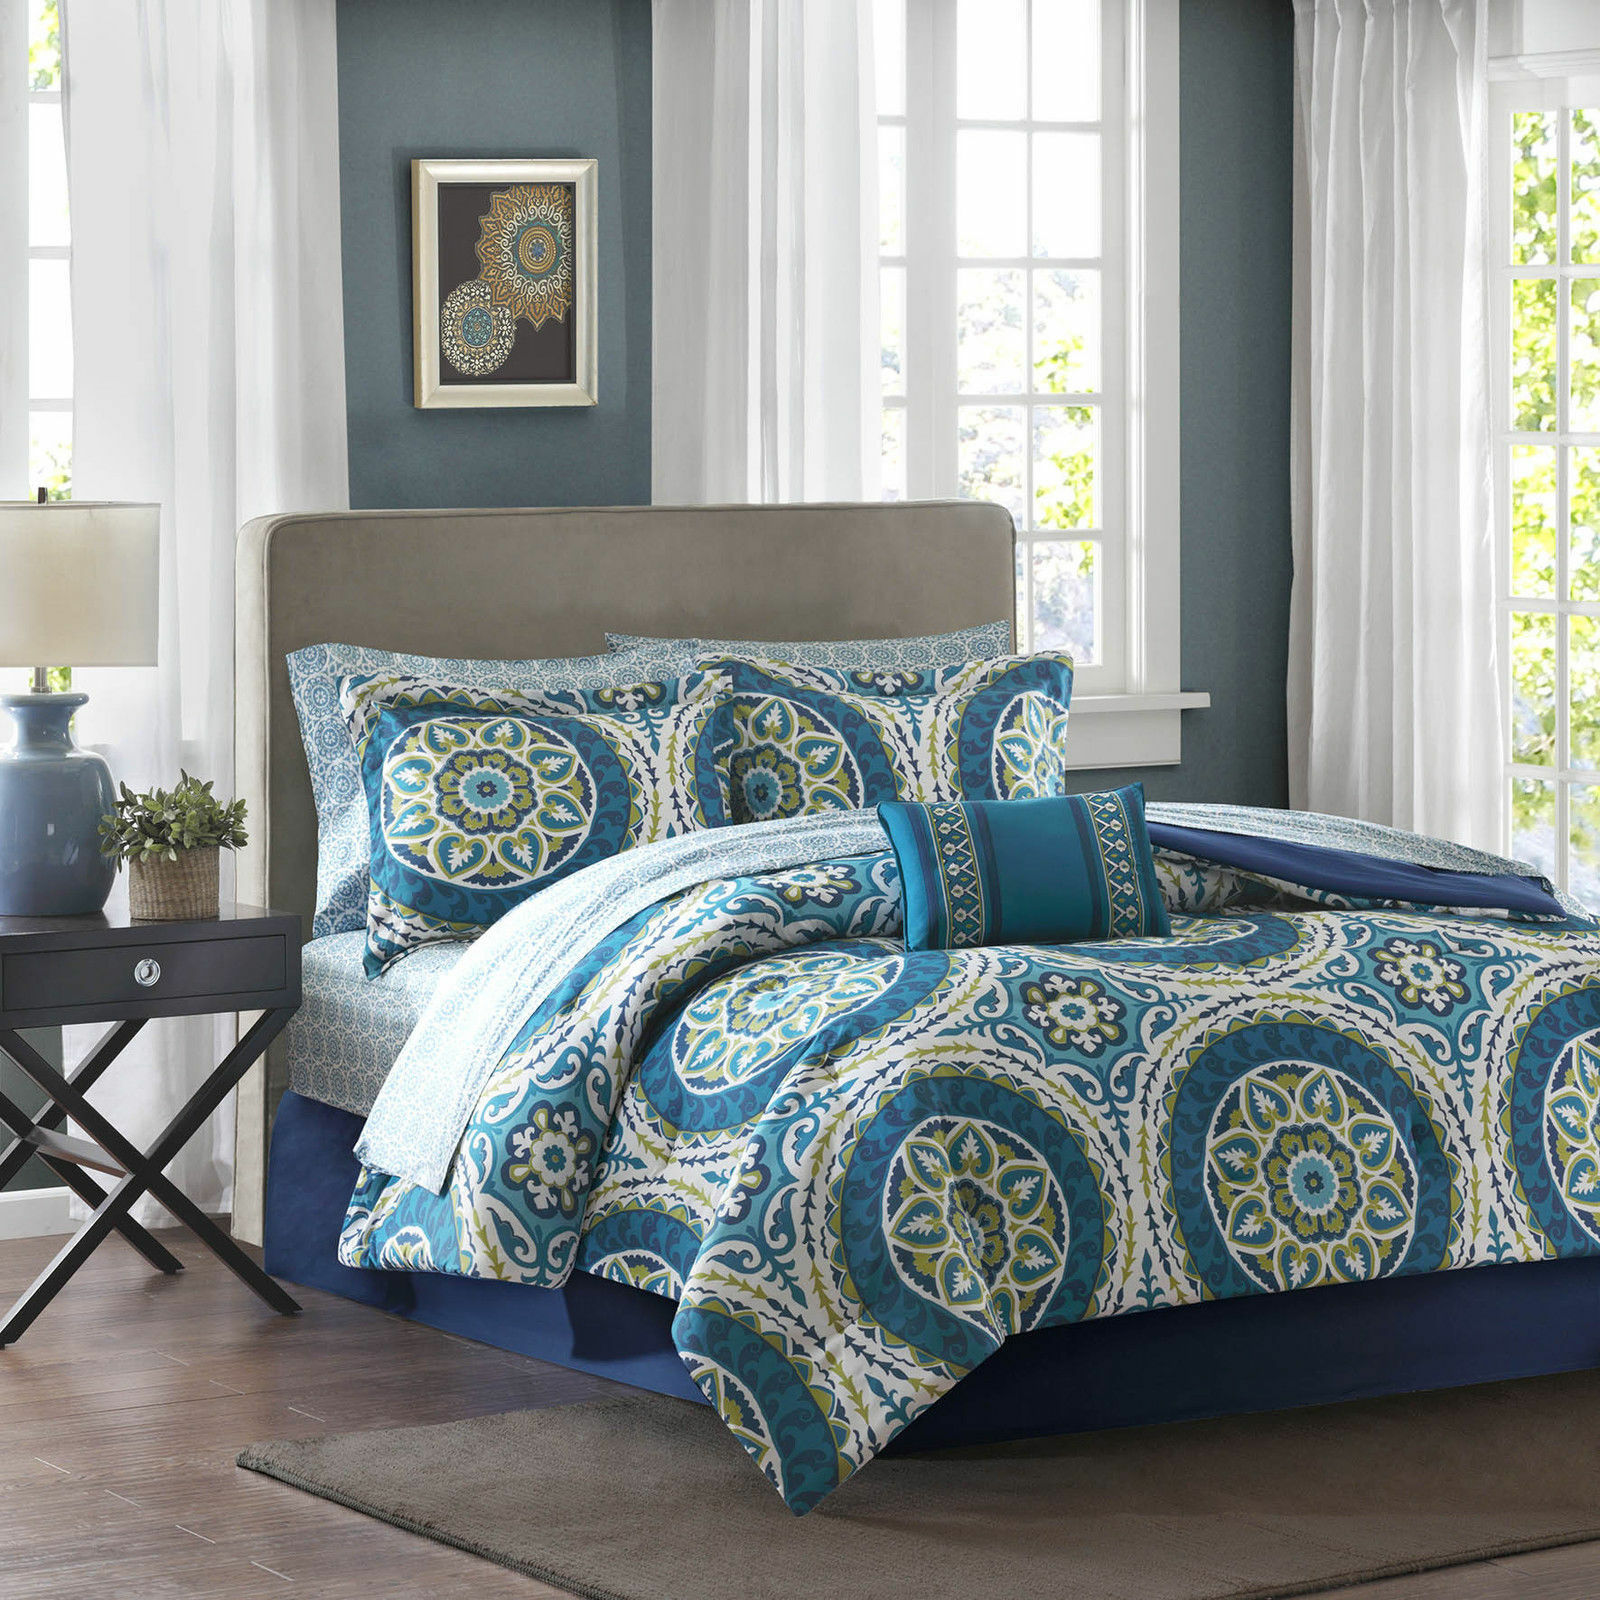 BEAUTIFUL MODERN Blau TEAL AQUA Grün BOHEMIAN GLOBAL COMFORTER SET & SHEETS